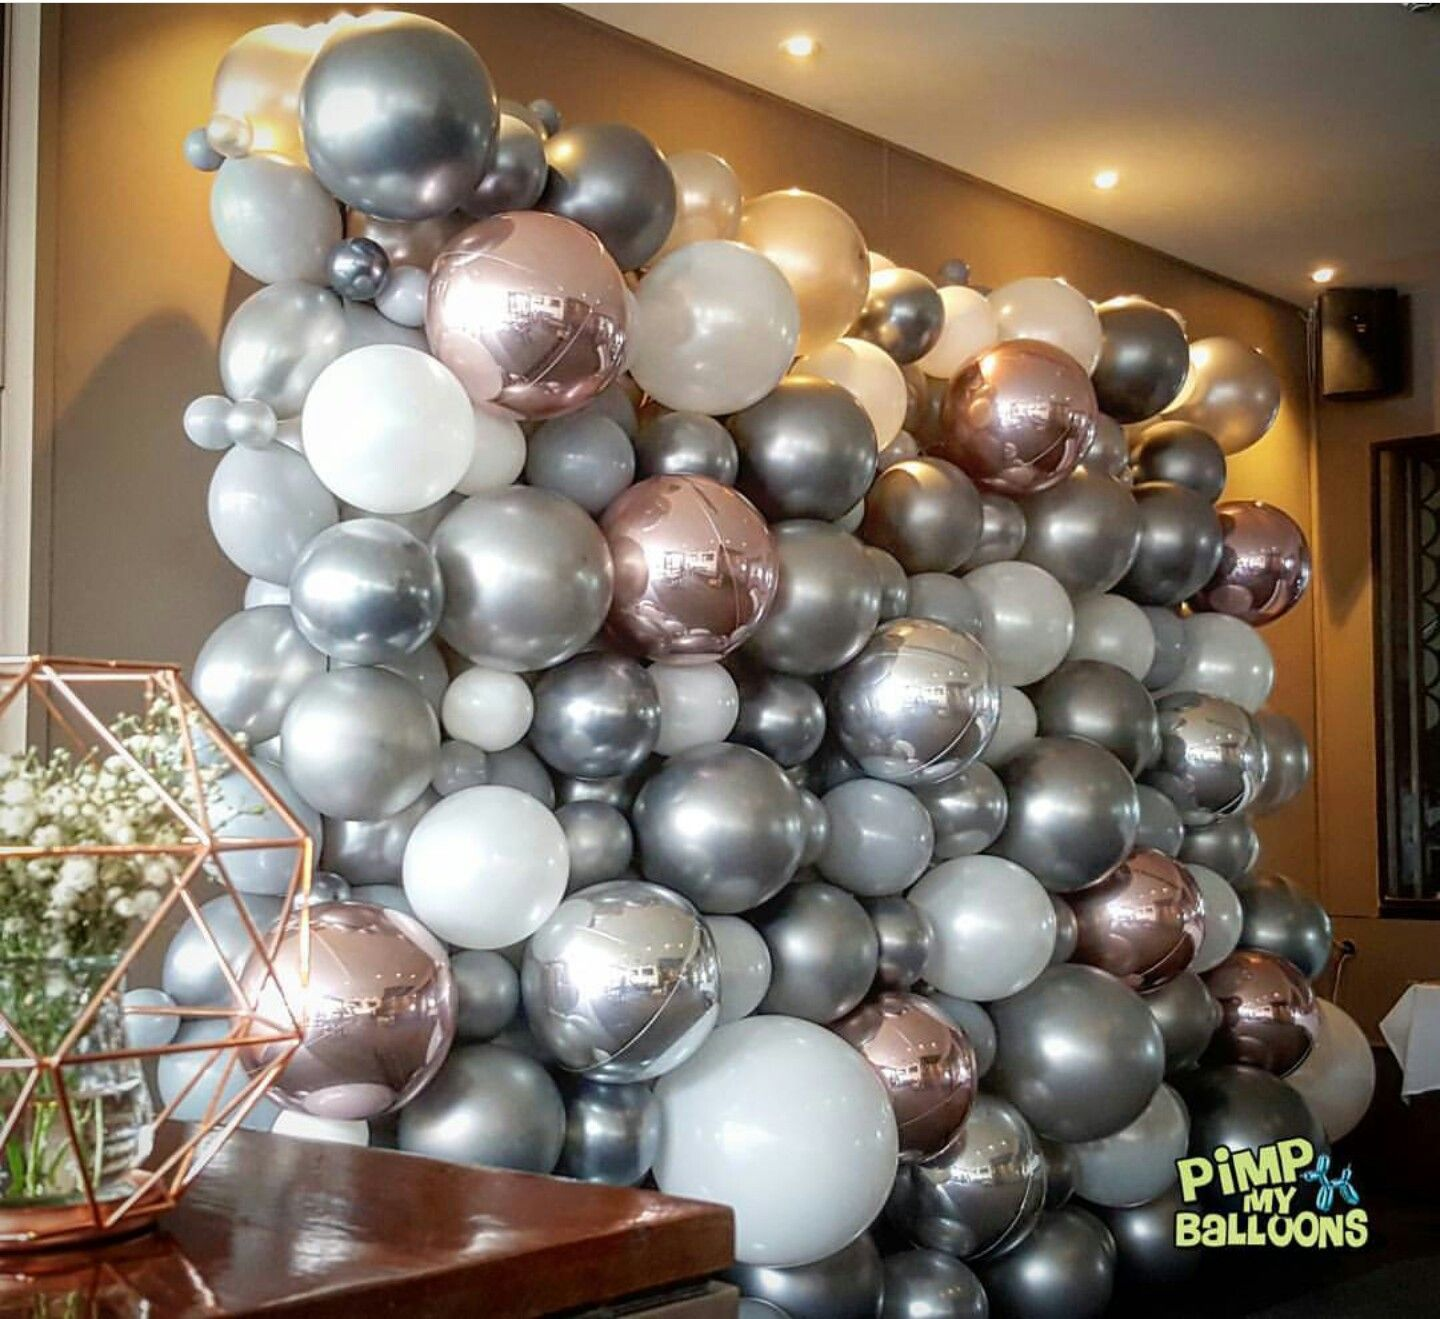 Ballon Wall For Photos During Baby Shower Www Balloonsdc Com Balloons Balloon Decorations Balloon Wall